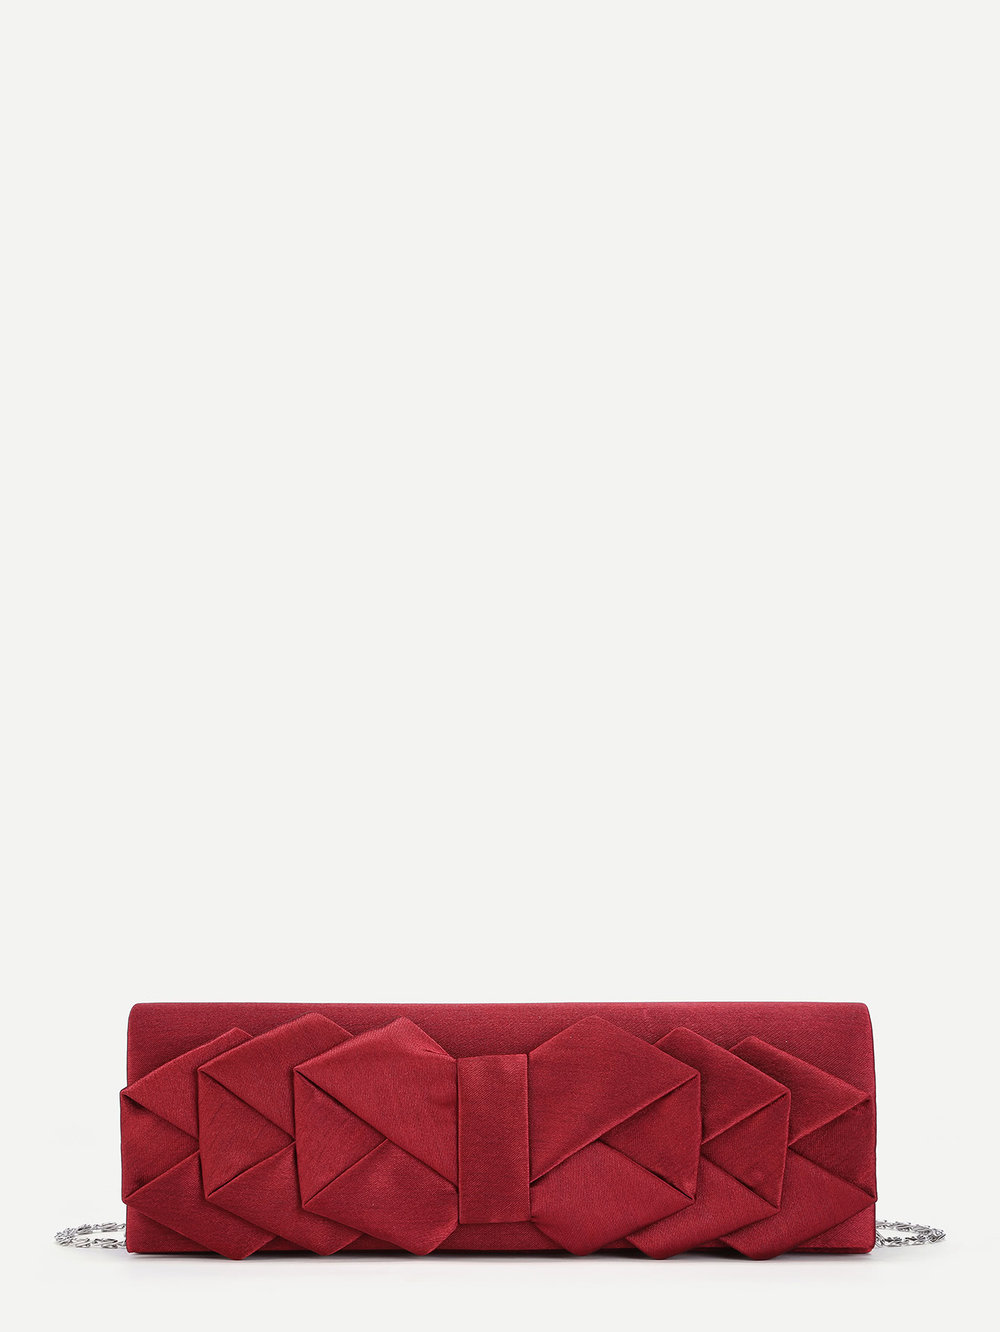 cyber monday sales remwe red bow christmas clutch.jpg